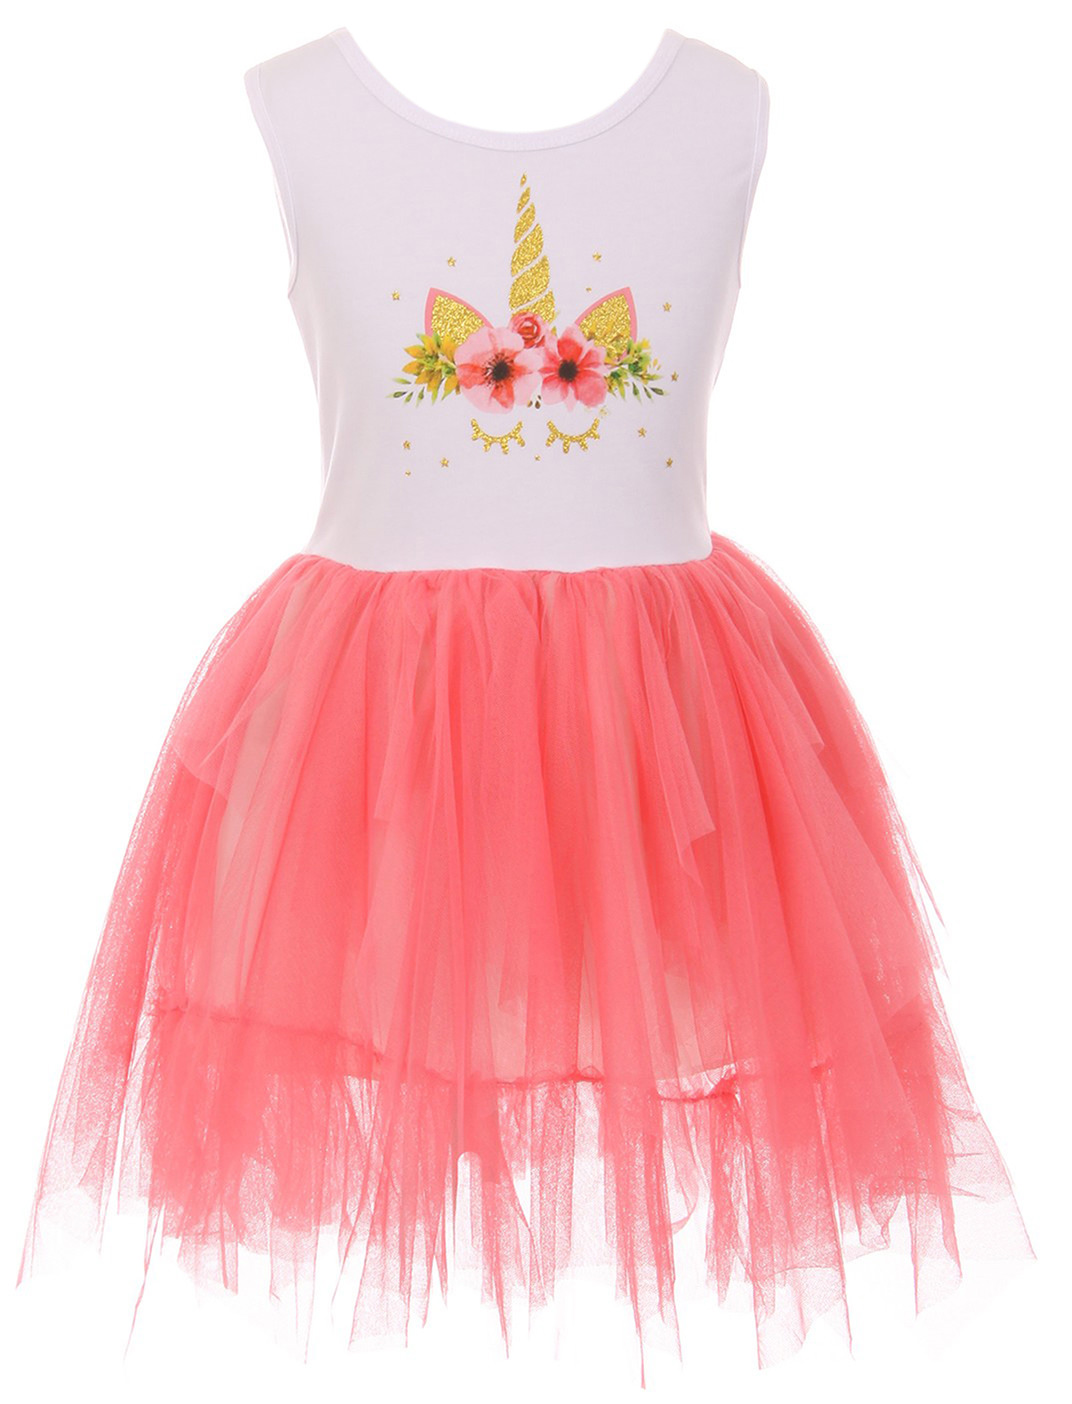 Toddler Girls Sleeveless Unicorn Tutu Tulle Birthday Party Flower Girl Dress Coral 2T XS (P501354P)